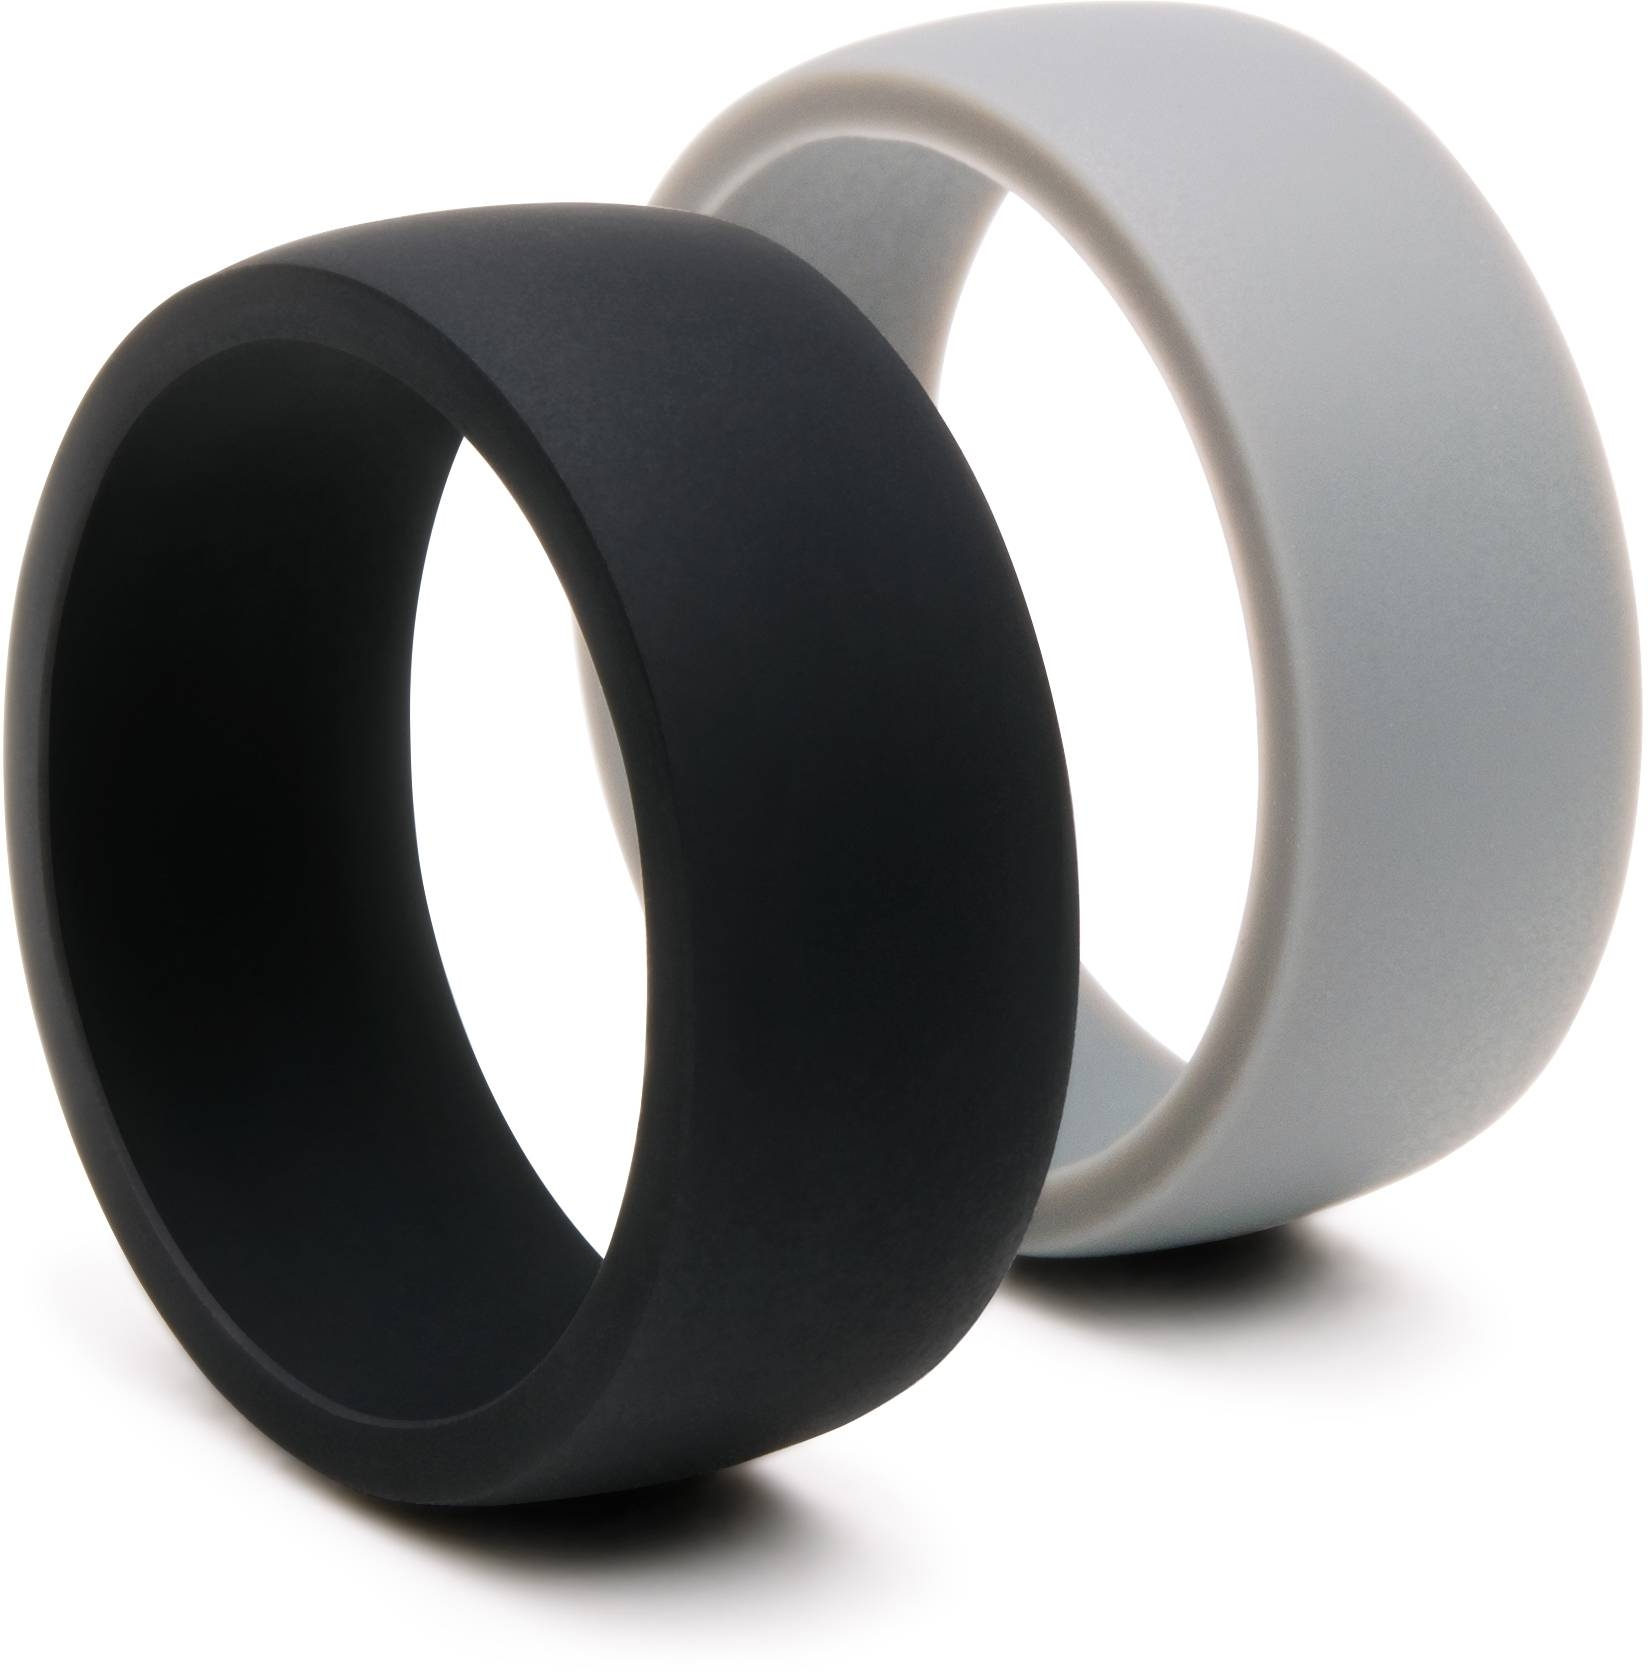 Silicone Wedding Ring, Silicone Wedding Band For Men, 2 Rings Pack For Silicone Wedding Bands (View 13 of 15)